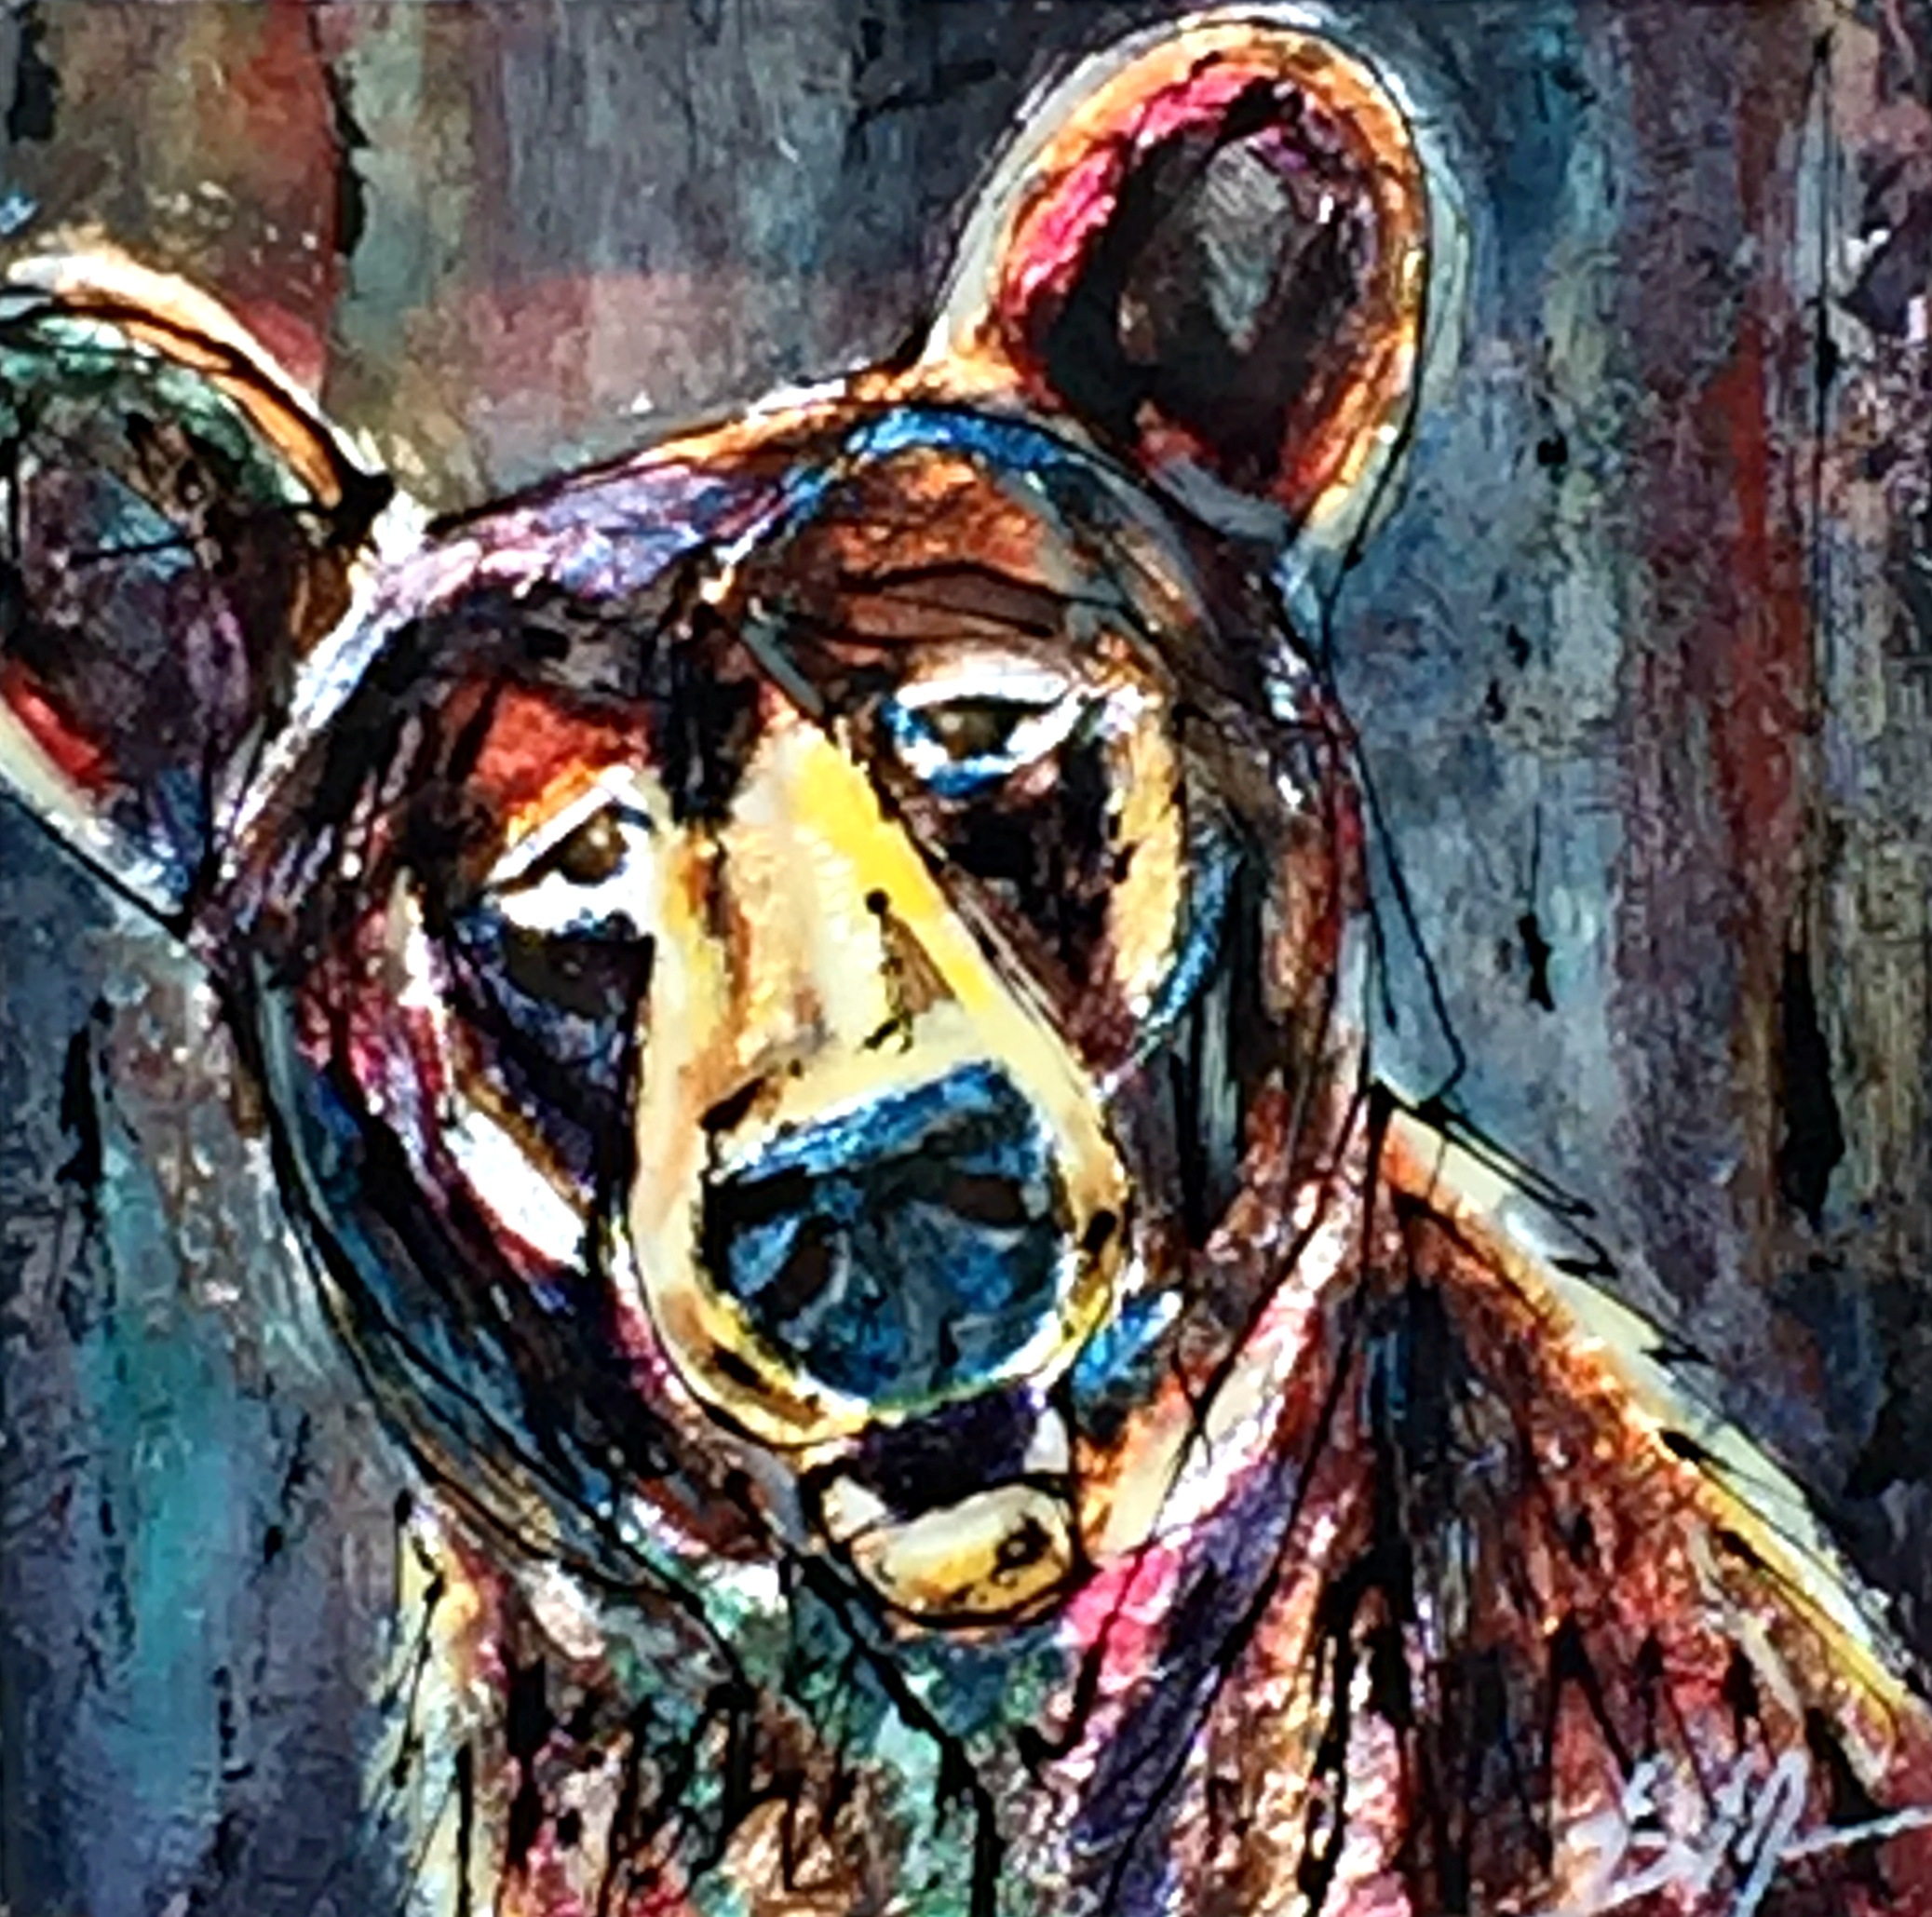 Friday is Here, mixed media bear painting by David Zimmerman | Effusion Art Gallery + Cast Glass Studio, Invermere BC